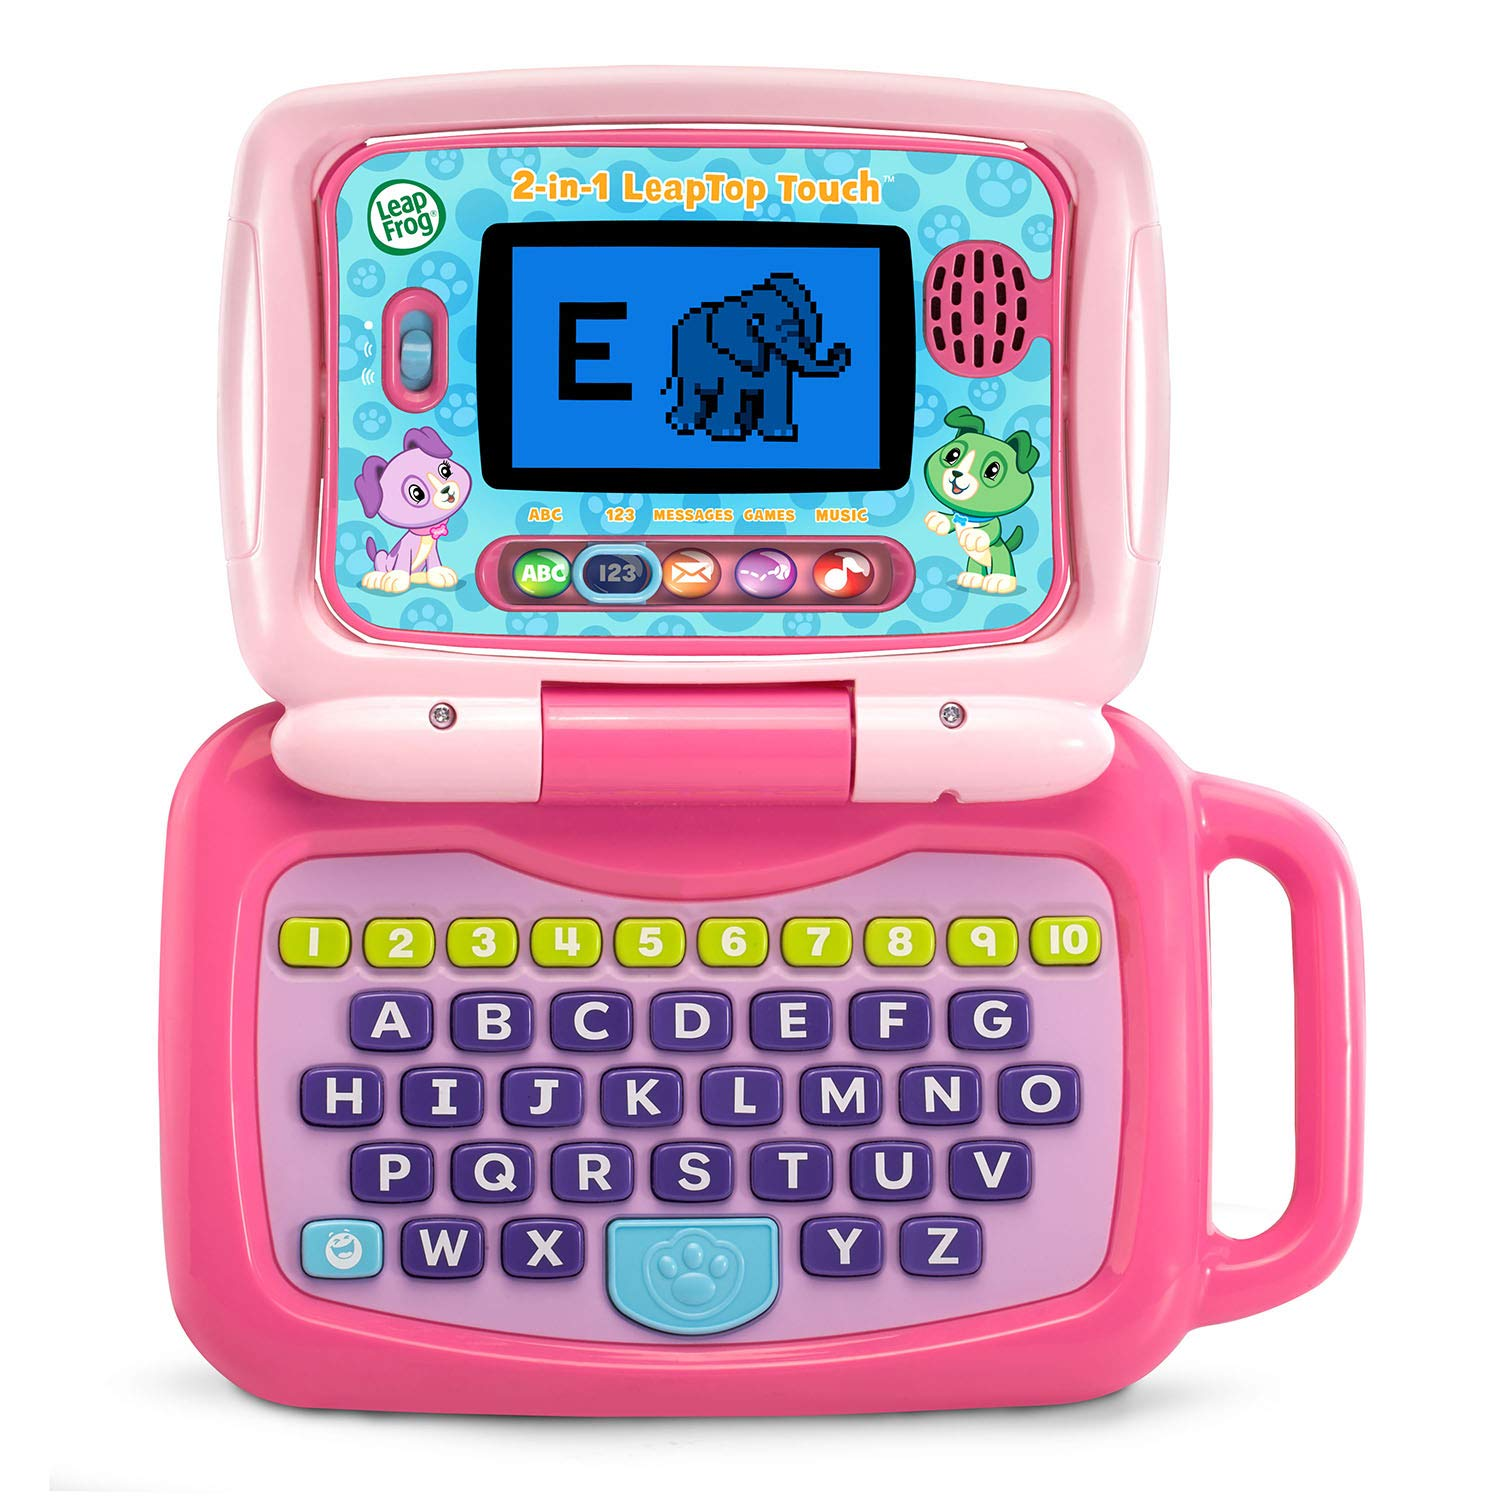 LeapFrog 2-in-1 Leaptop Touch (Frustration Free Packaging), Pink by LeapFrog